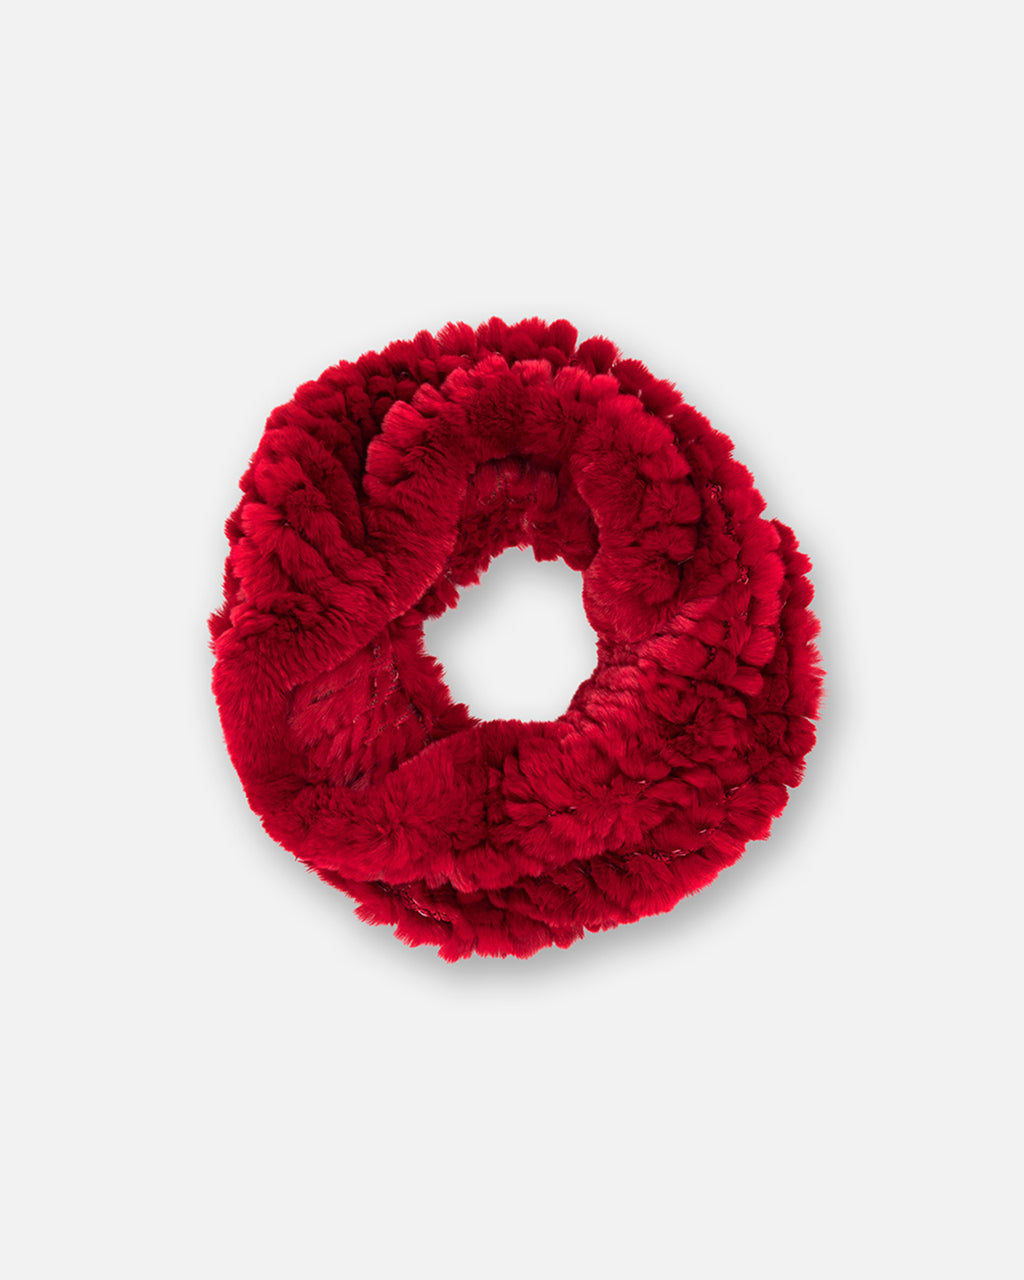 BH10157 - KNIT BUNNY INFINITY SCARF - accessories - ties - In a luxuriously soft fur, this scarf makes for the perfect addition to any fall wardrobe. Final Sale